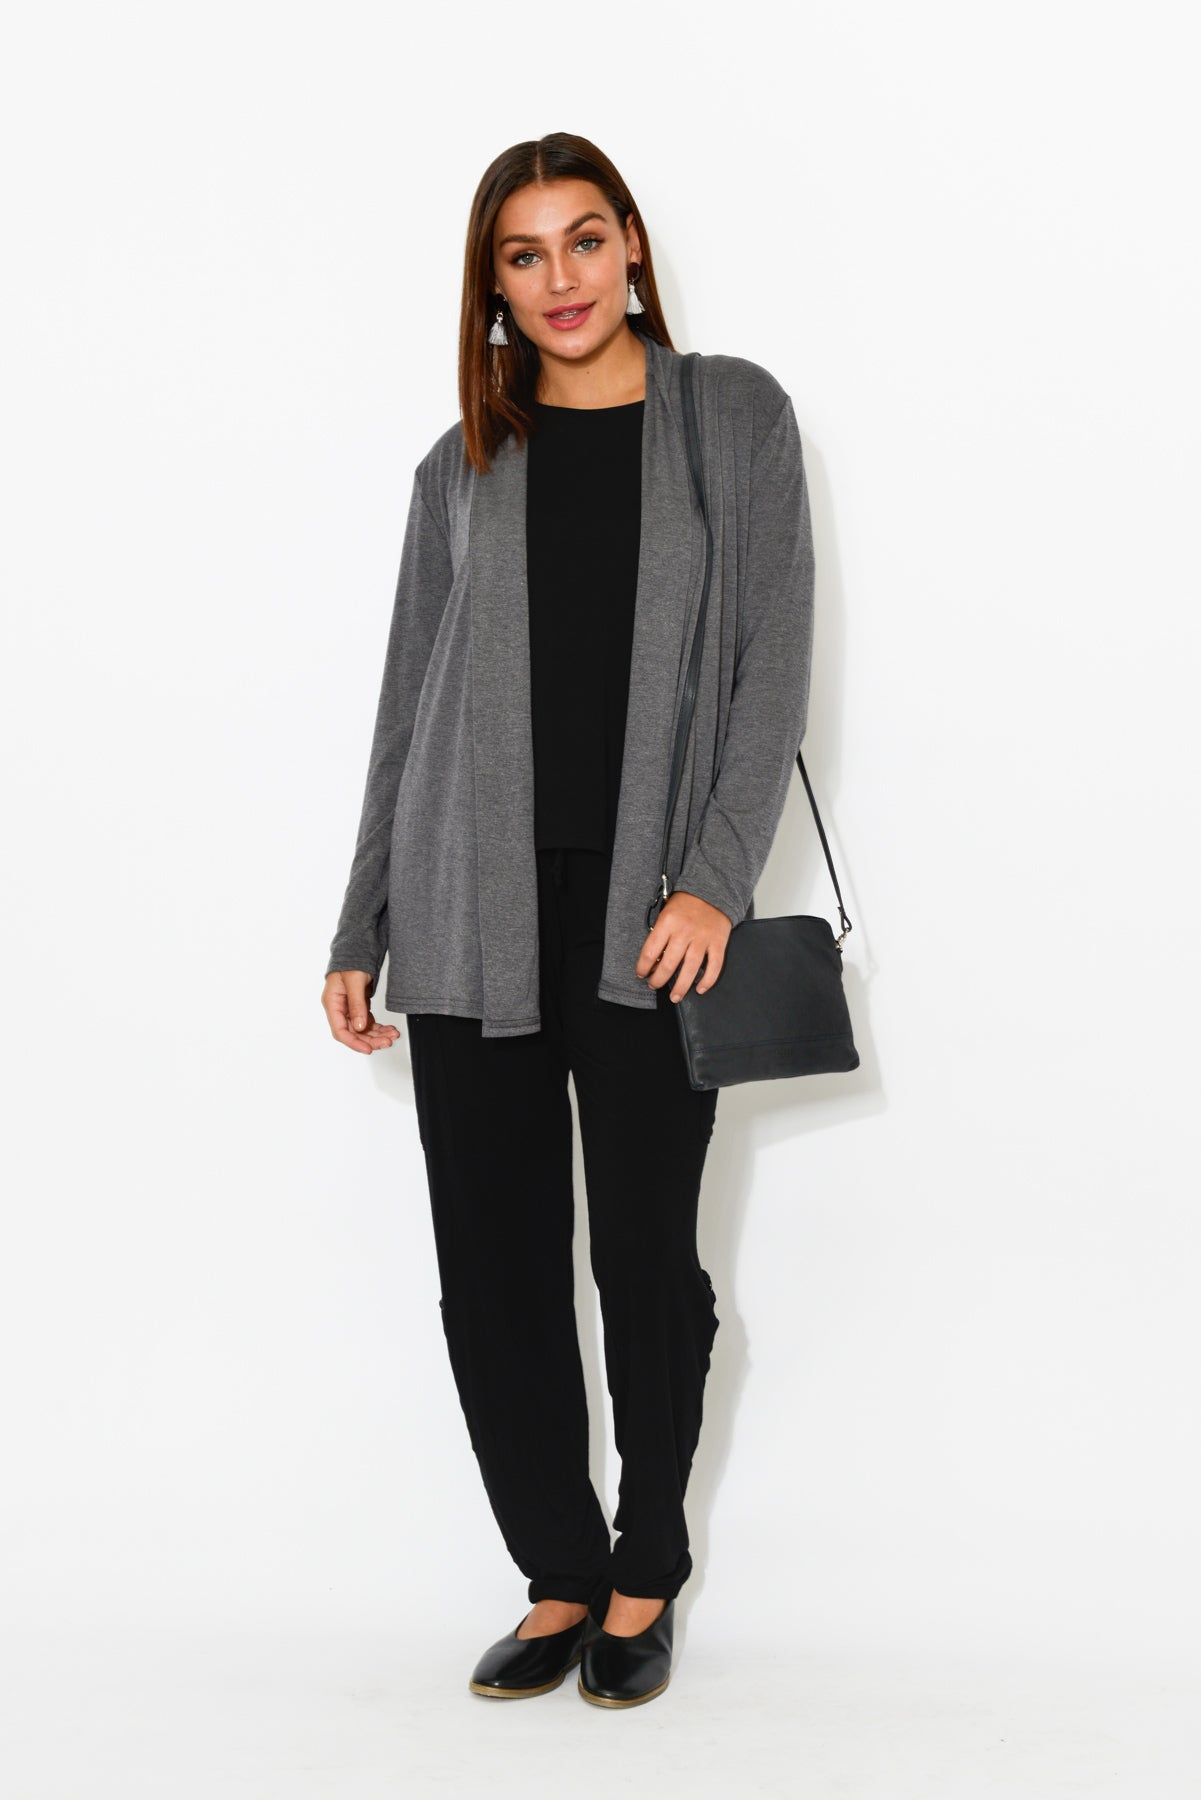 Harper Grey Cotton Cardigan - Blue Bungalow